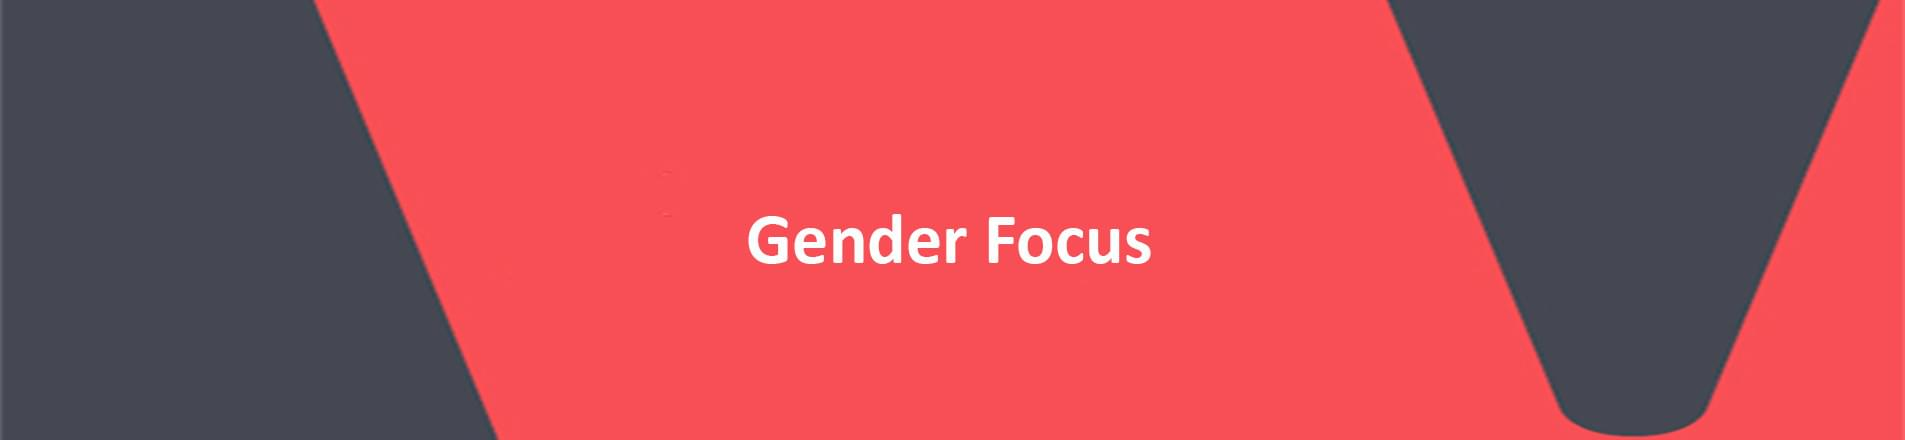 Red banner with white text spelling Gender Focus